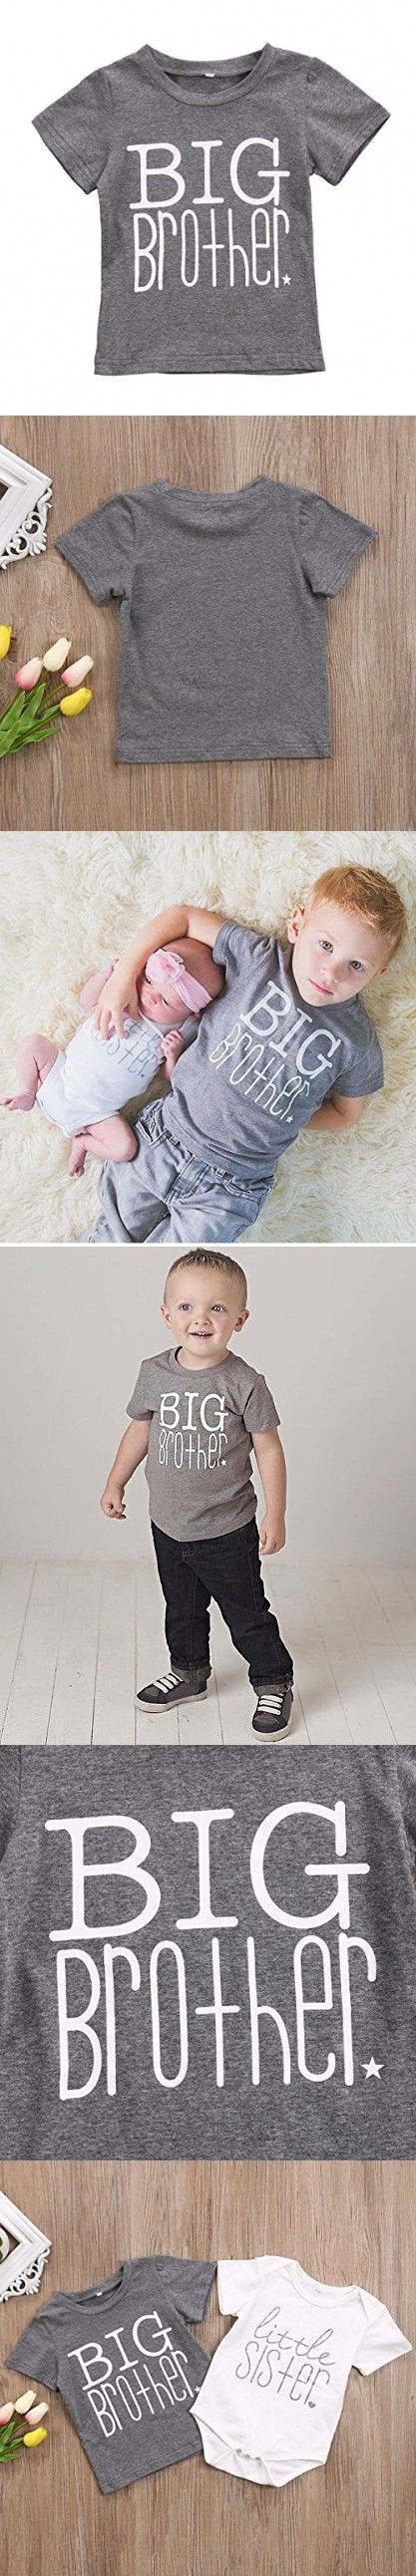 Little Brother&Big Brother&Little Sister Print Arrow Pattern Romper& T-shirt Tee Tops (1-2 Y, Gray (Big Brother))